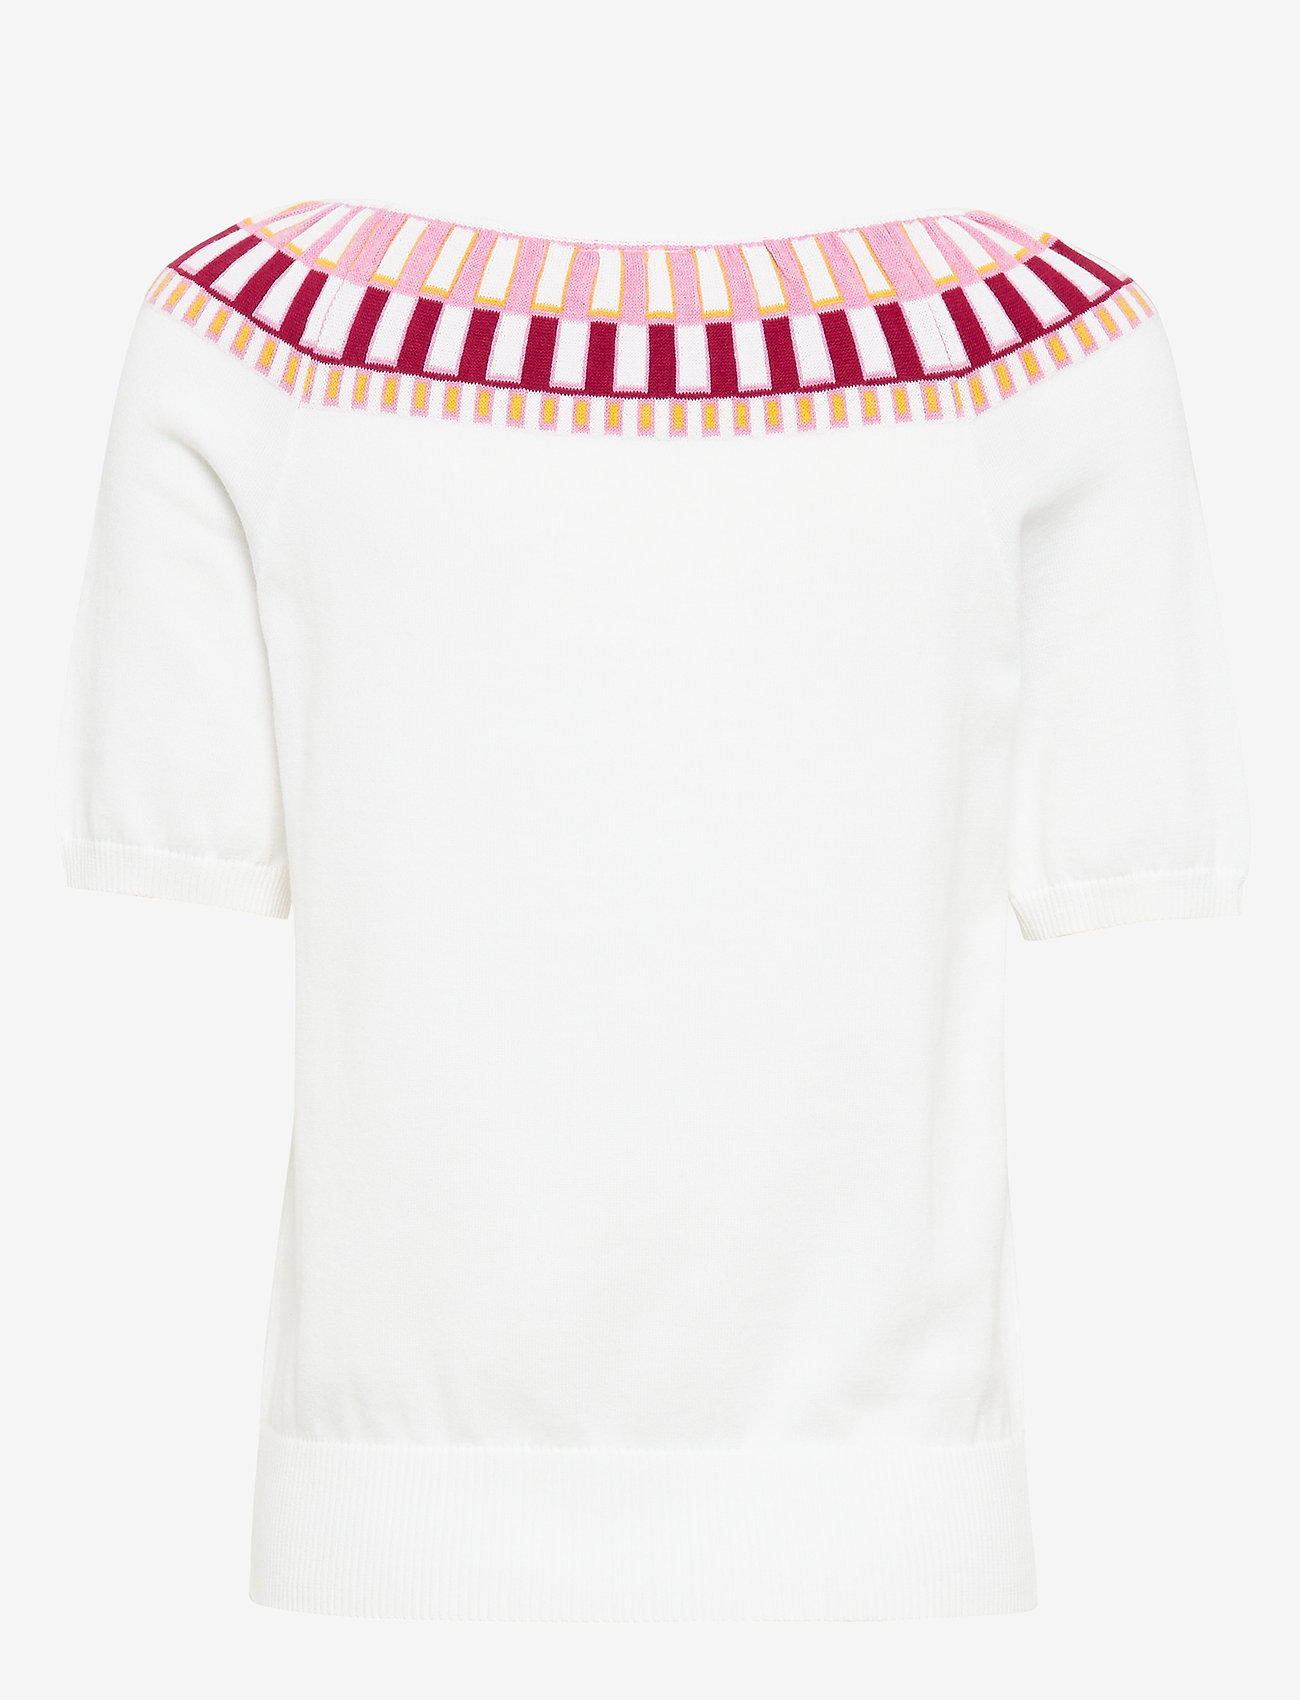 Esme (White) (90.35 €) - Jumperfabriken L430S